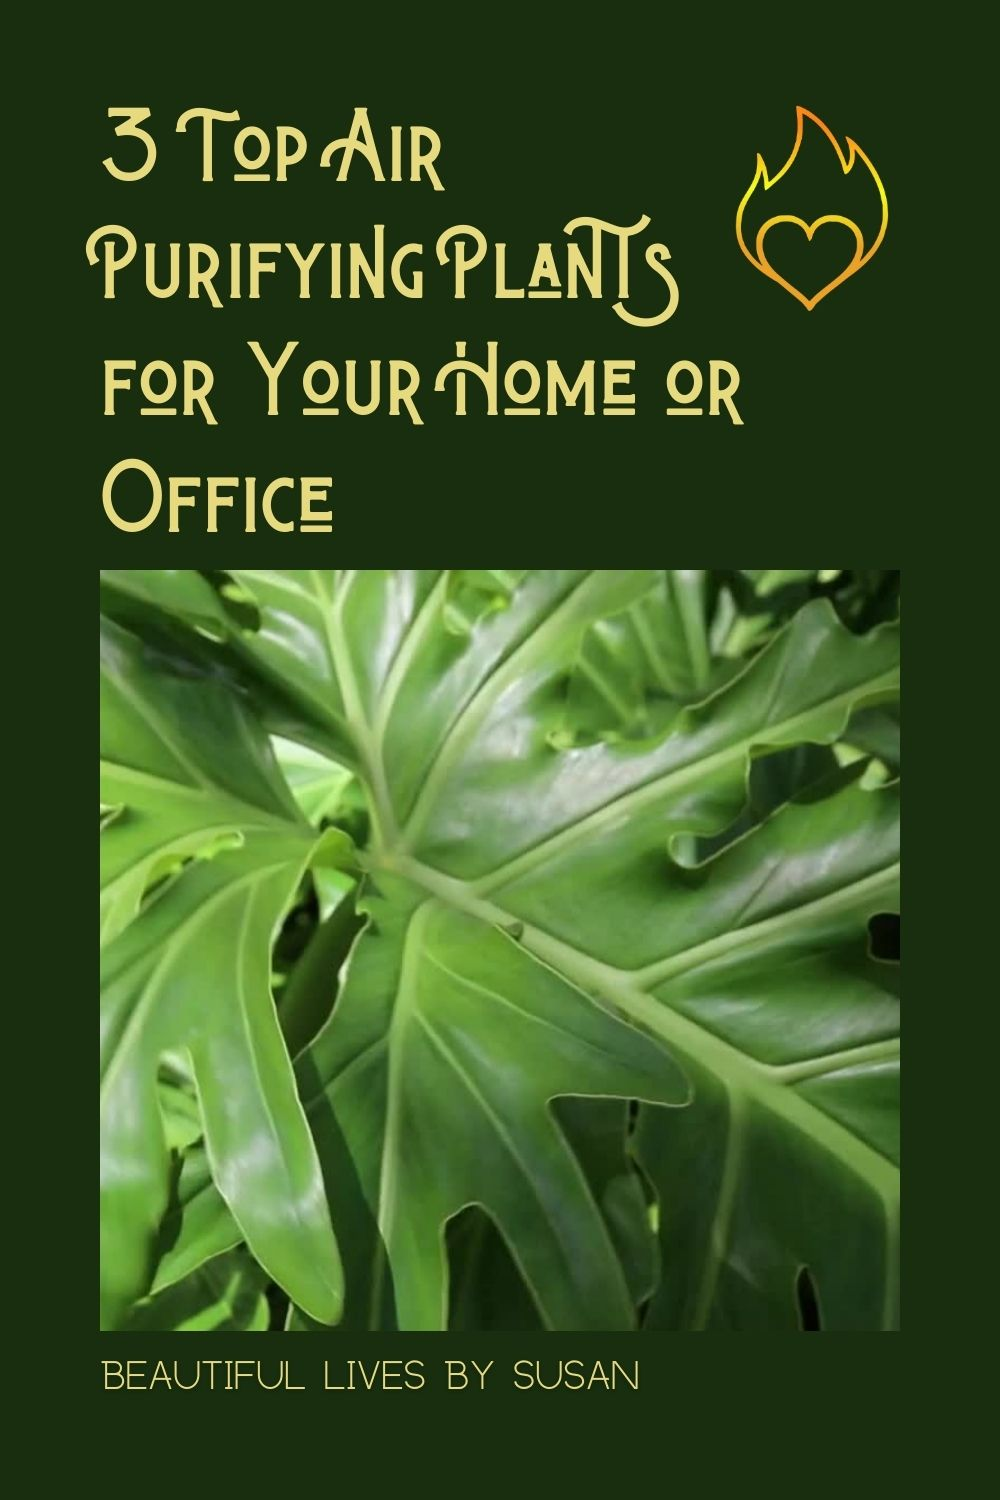 3 Top Air Purifying Plants for Your Home or Office